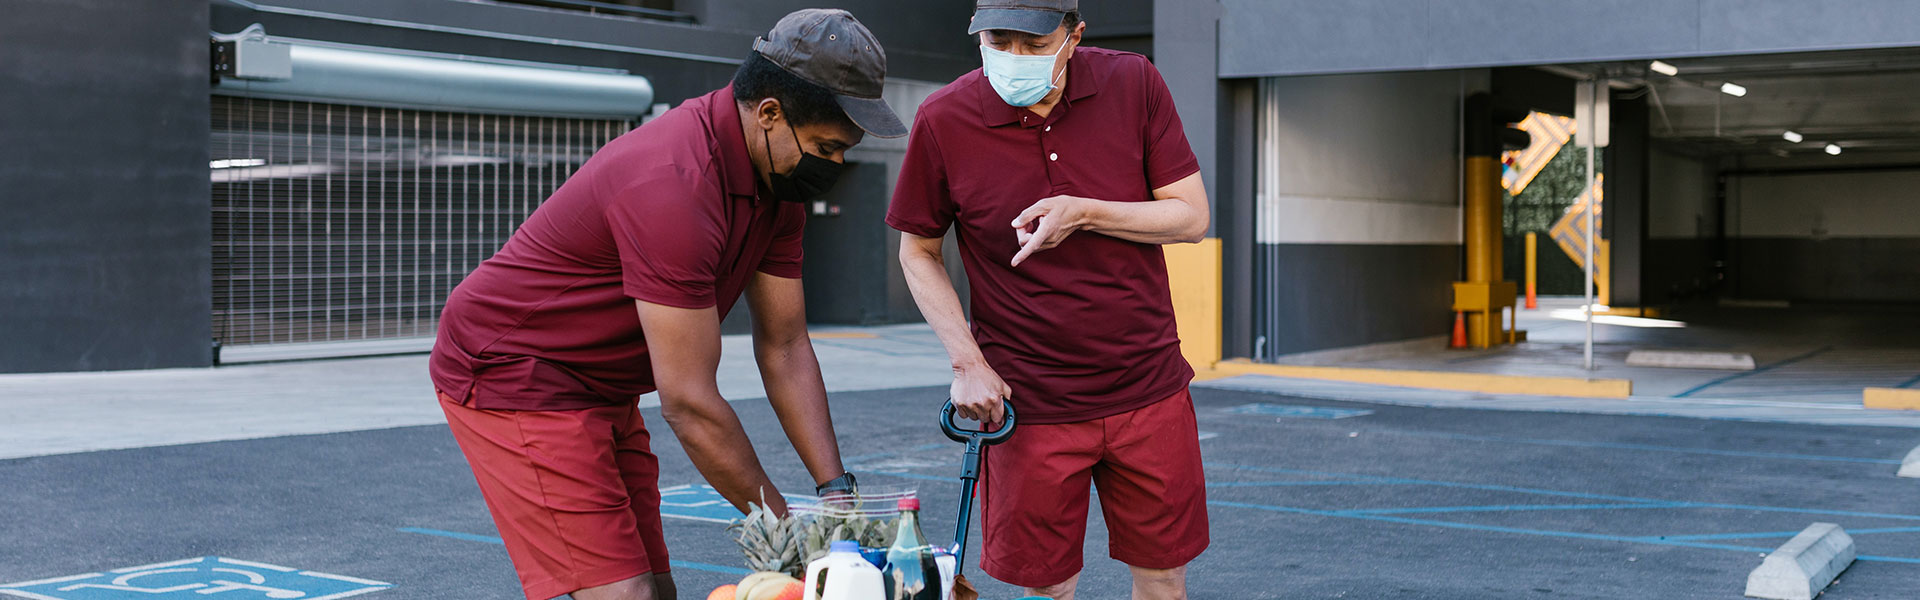 An outdoor image of wo workers wearing masks while delivering groceries